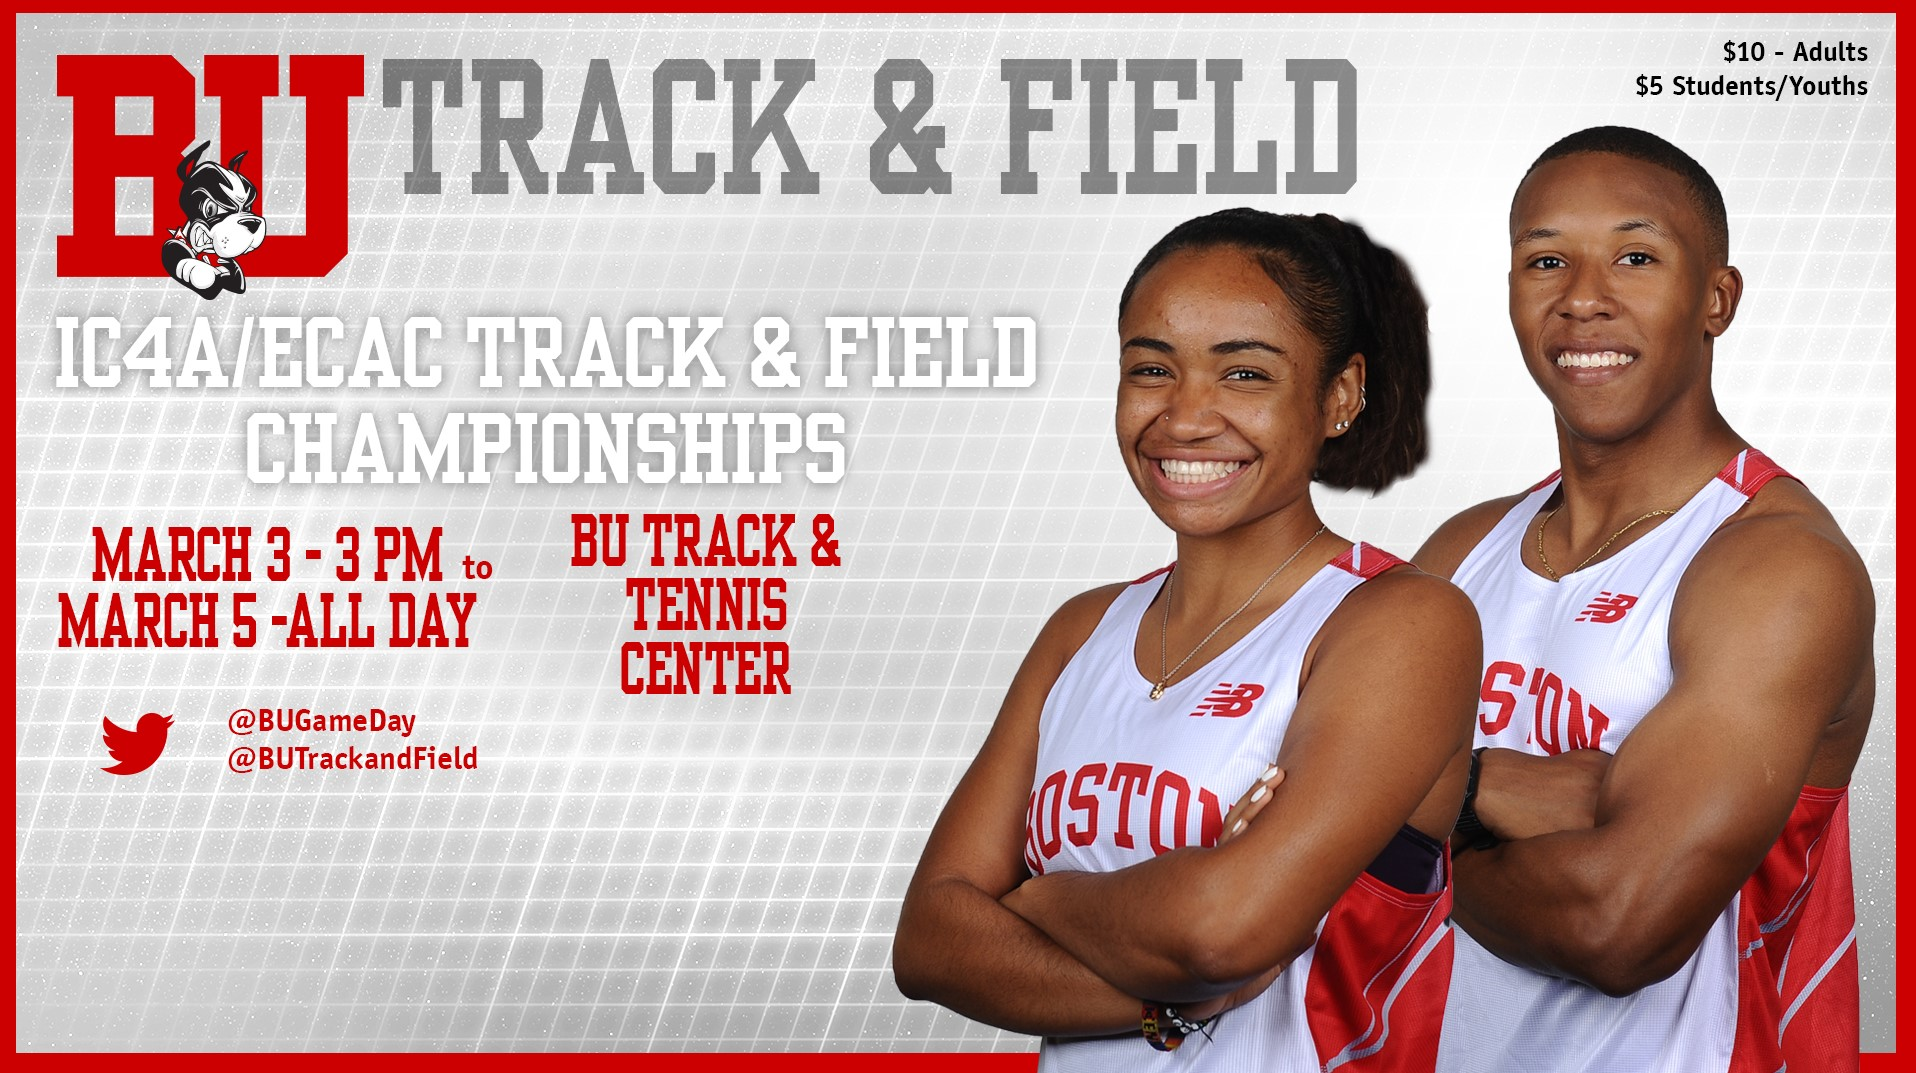 Terriers Compete in IC4A/ECAC Championships Beginning Friday